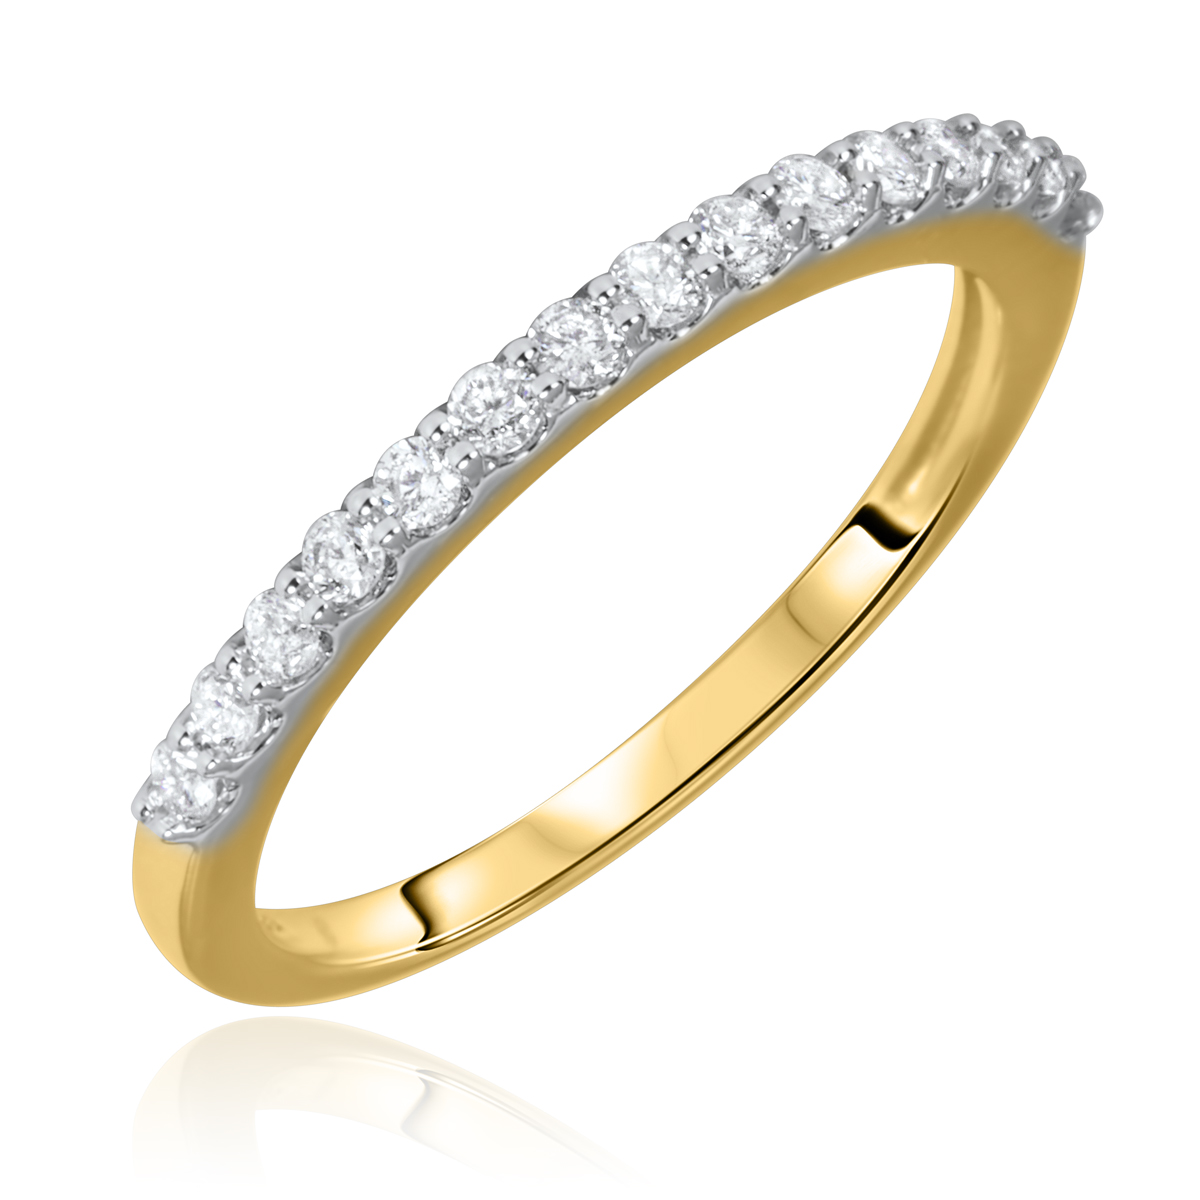 1/3 Carat T.W. Round Cut Diamond Ladies Wedding Band 14K Yellow Gold